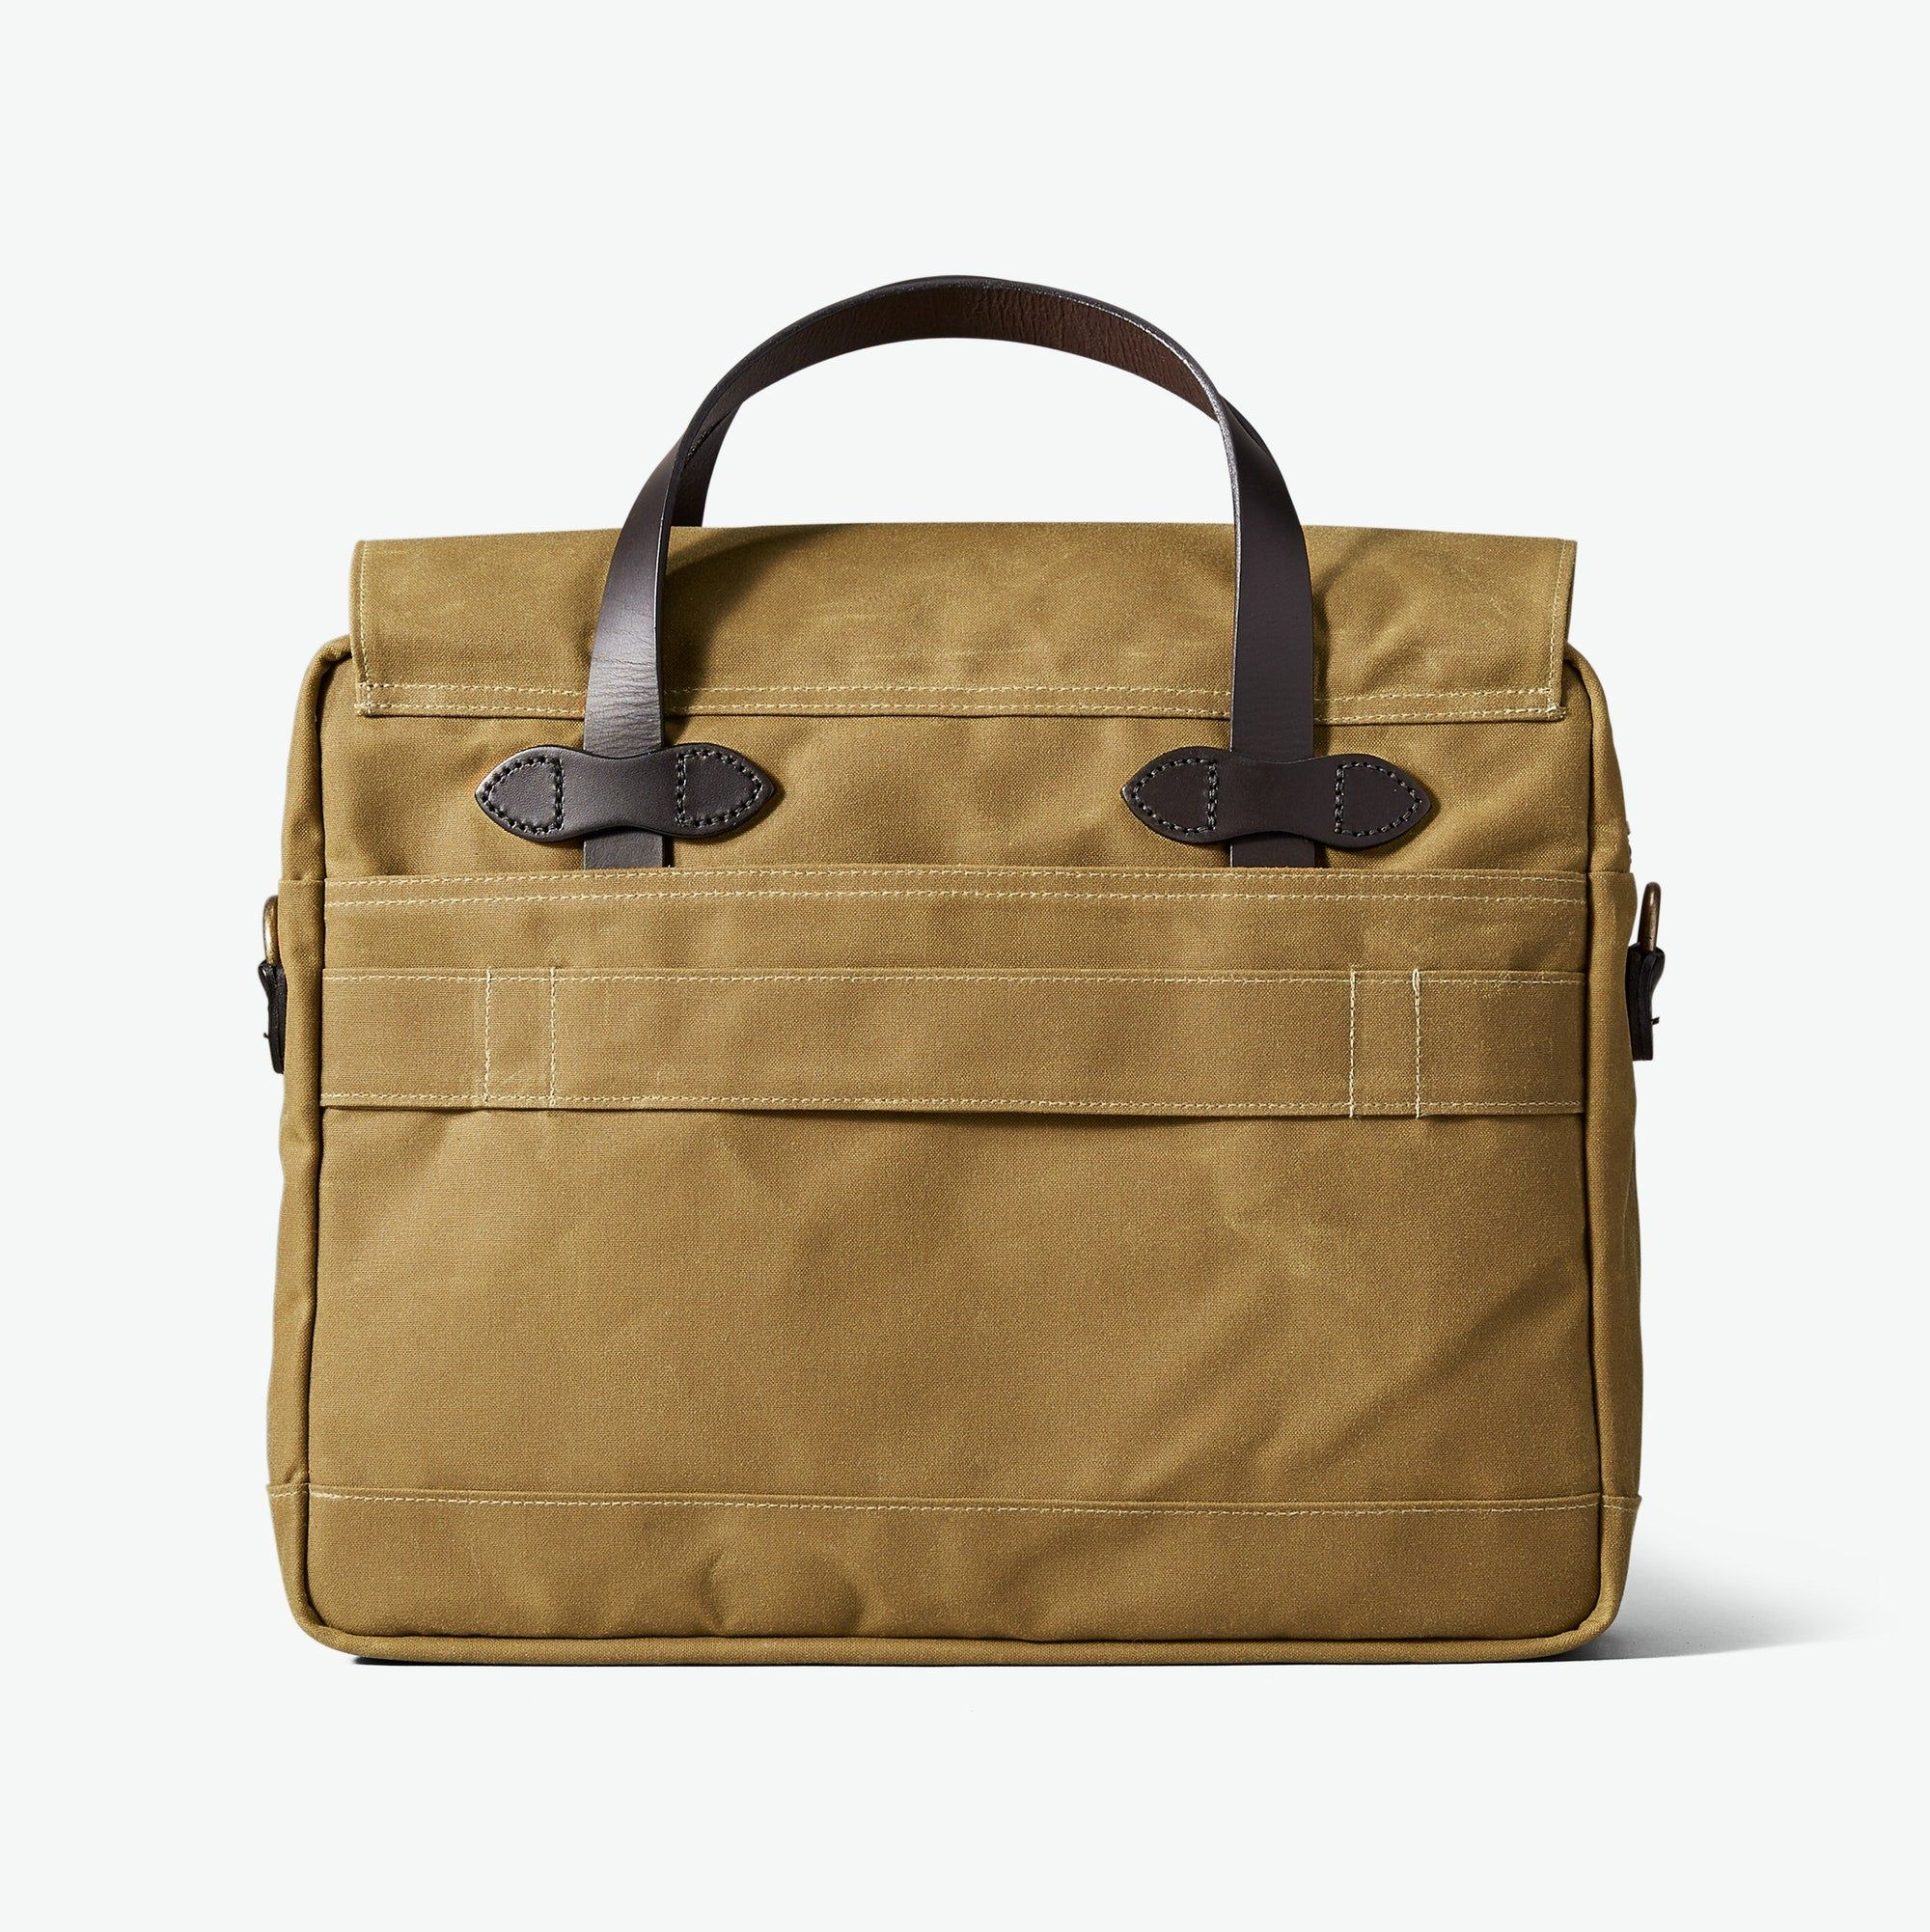 FILSON 24 HR TIN BRIEFCASE - DARK TAN